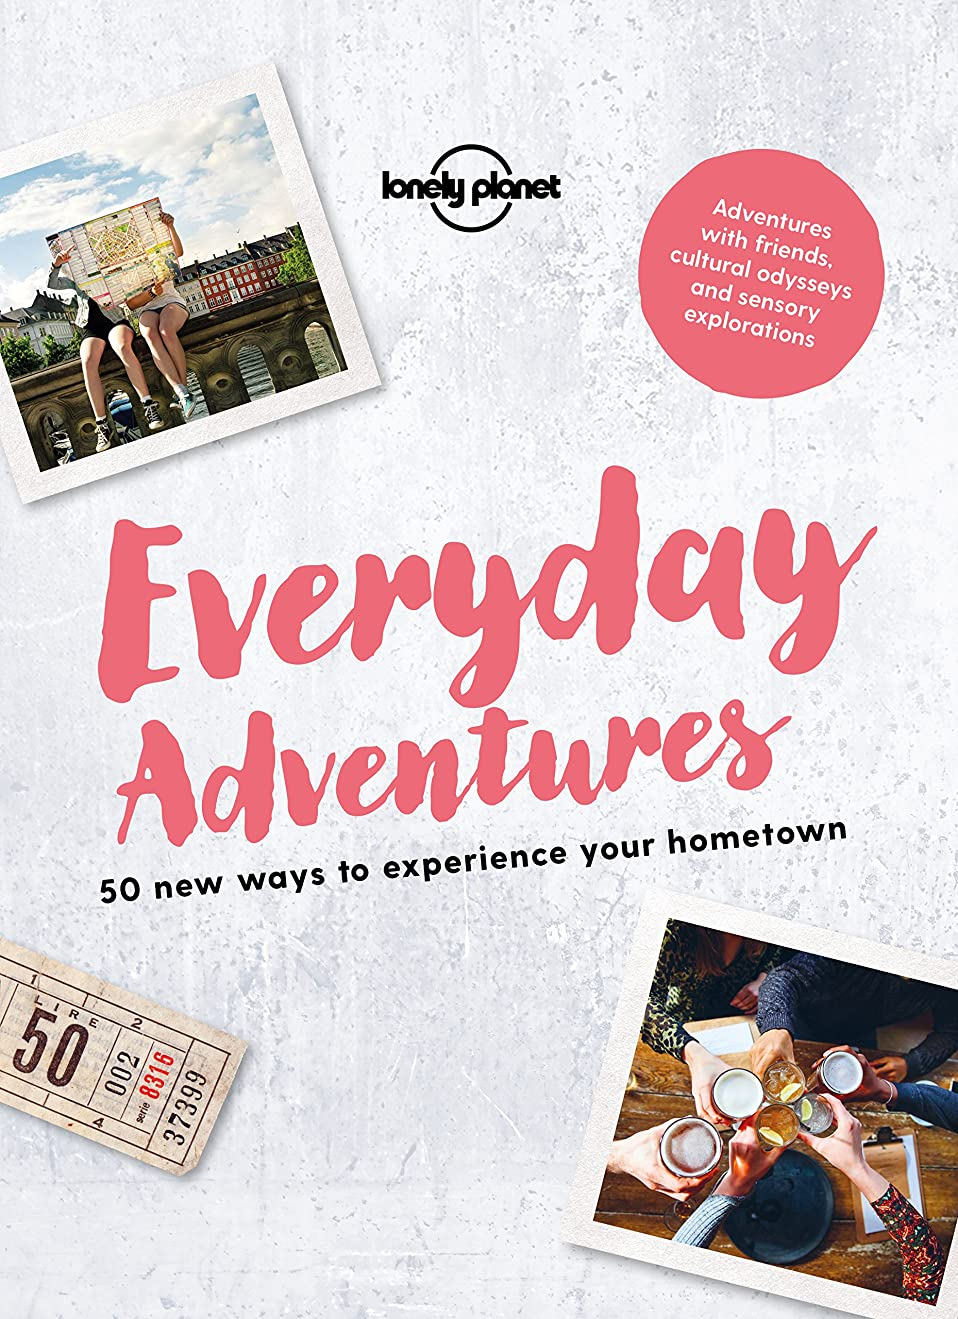 明らかにハリウッド専門知識Everyday Adventures: 50 new ways to experience your hometown (Lonely Planet) (English Edition)